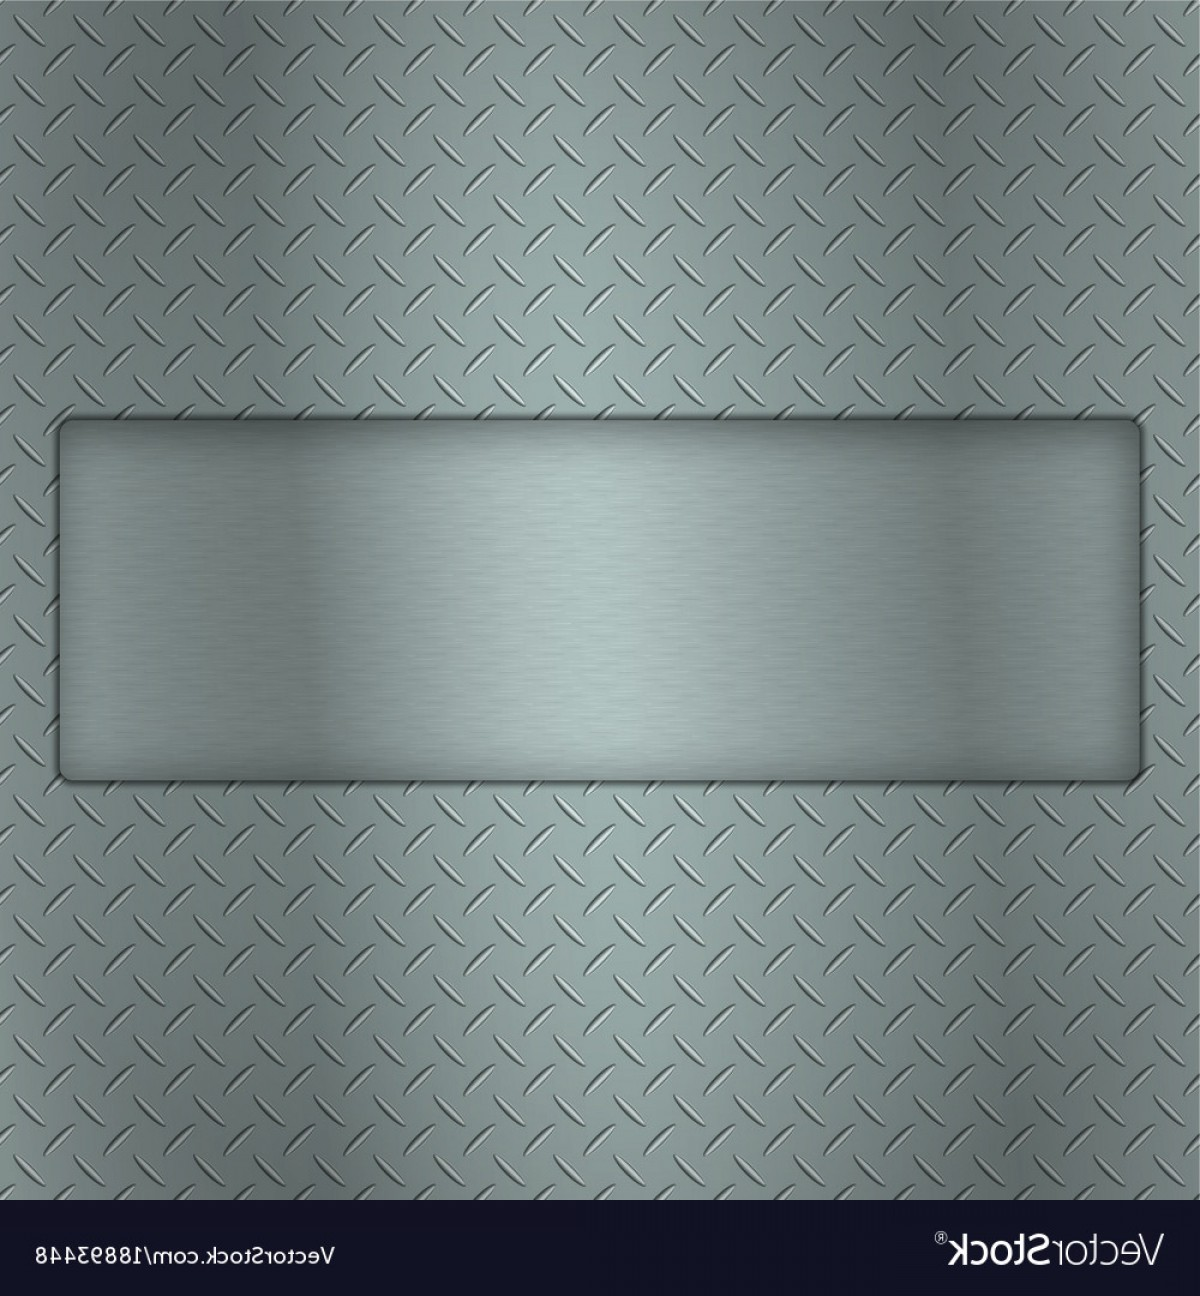 Tread Plate Vector: Metal Background Of Tread Plate Texture With Gap Vector